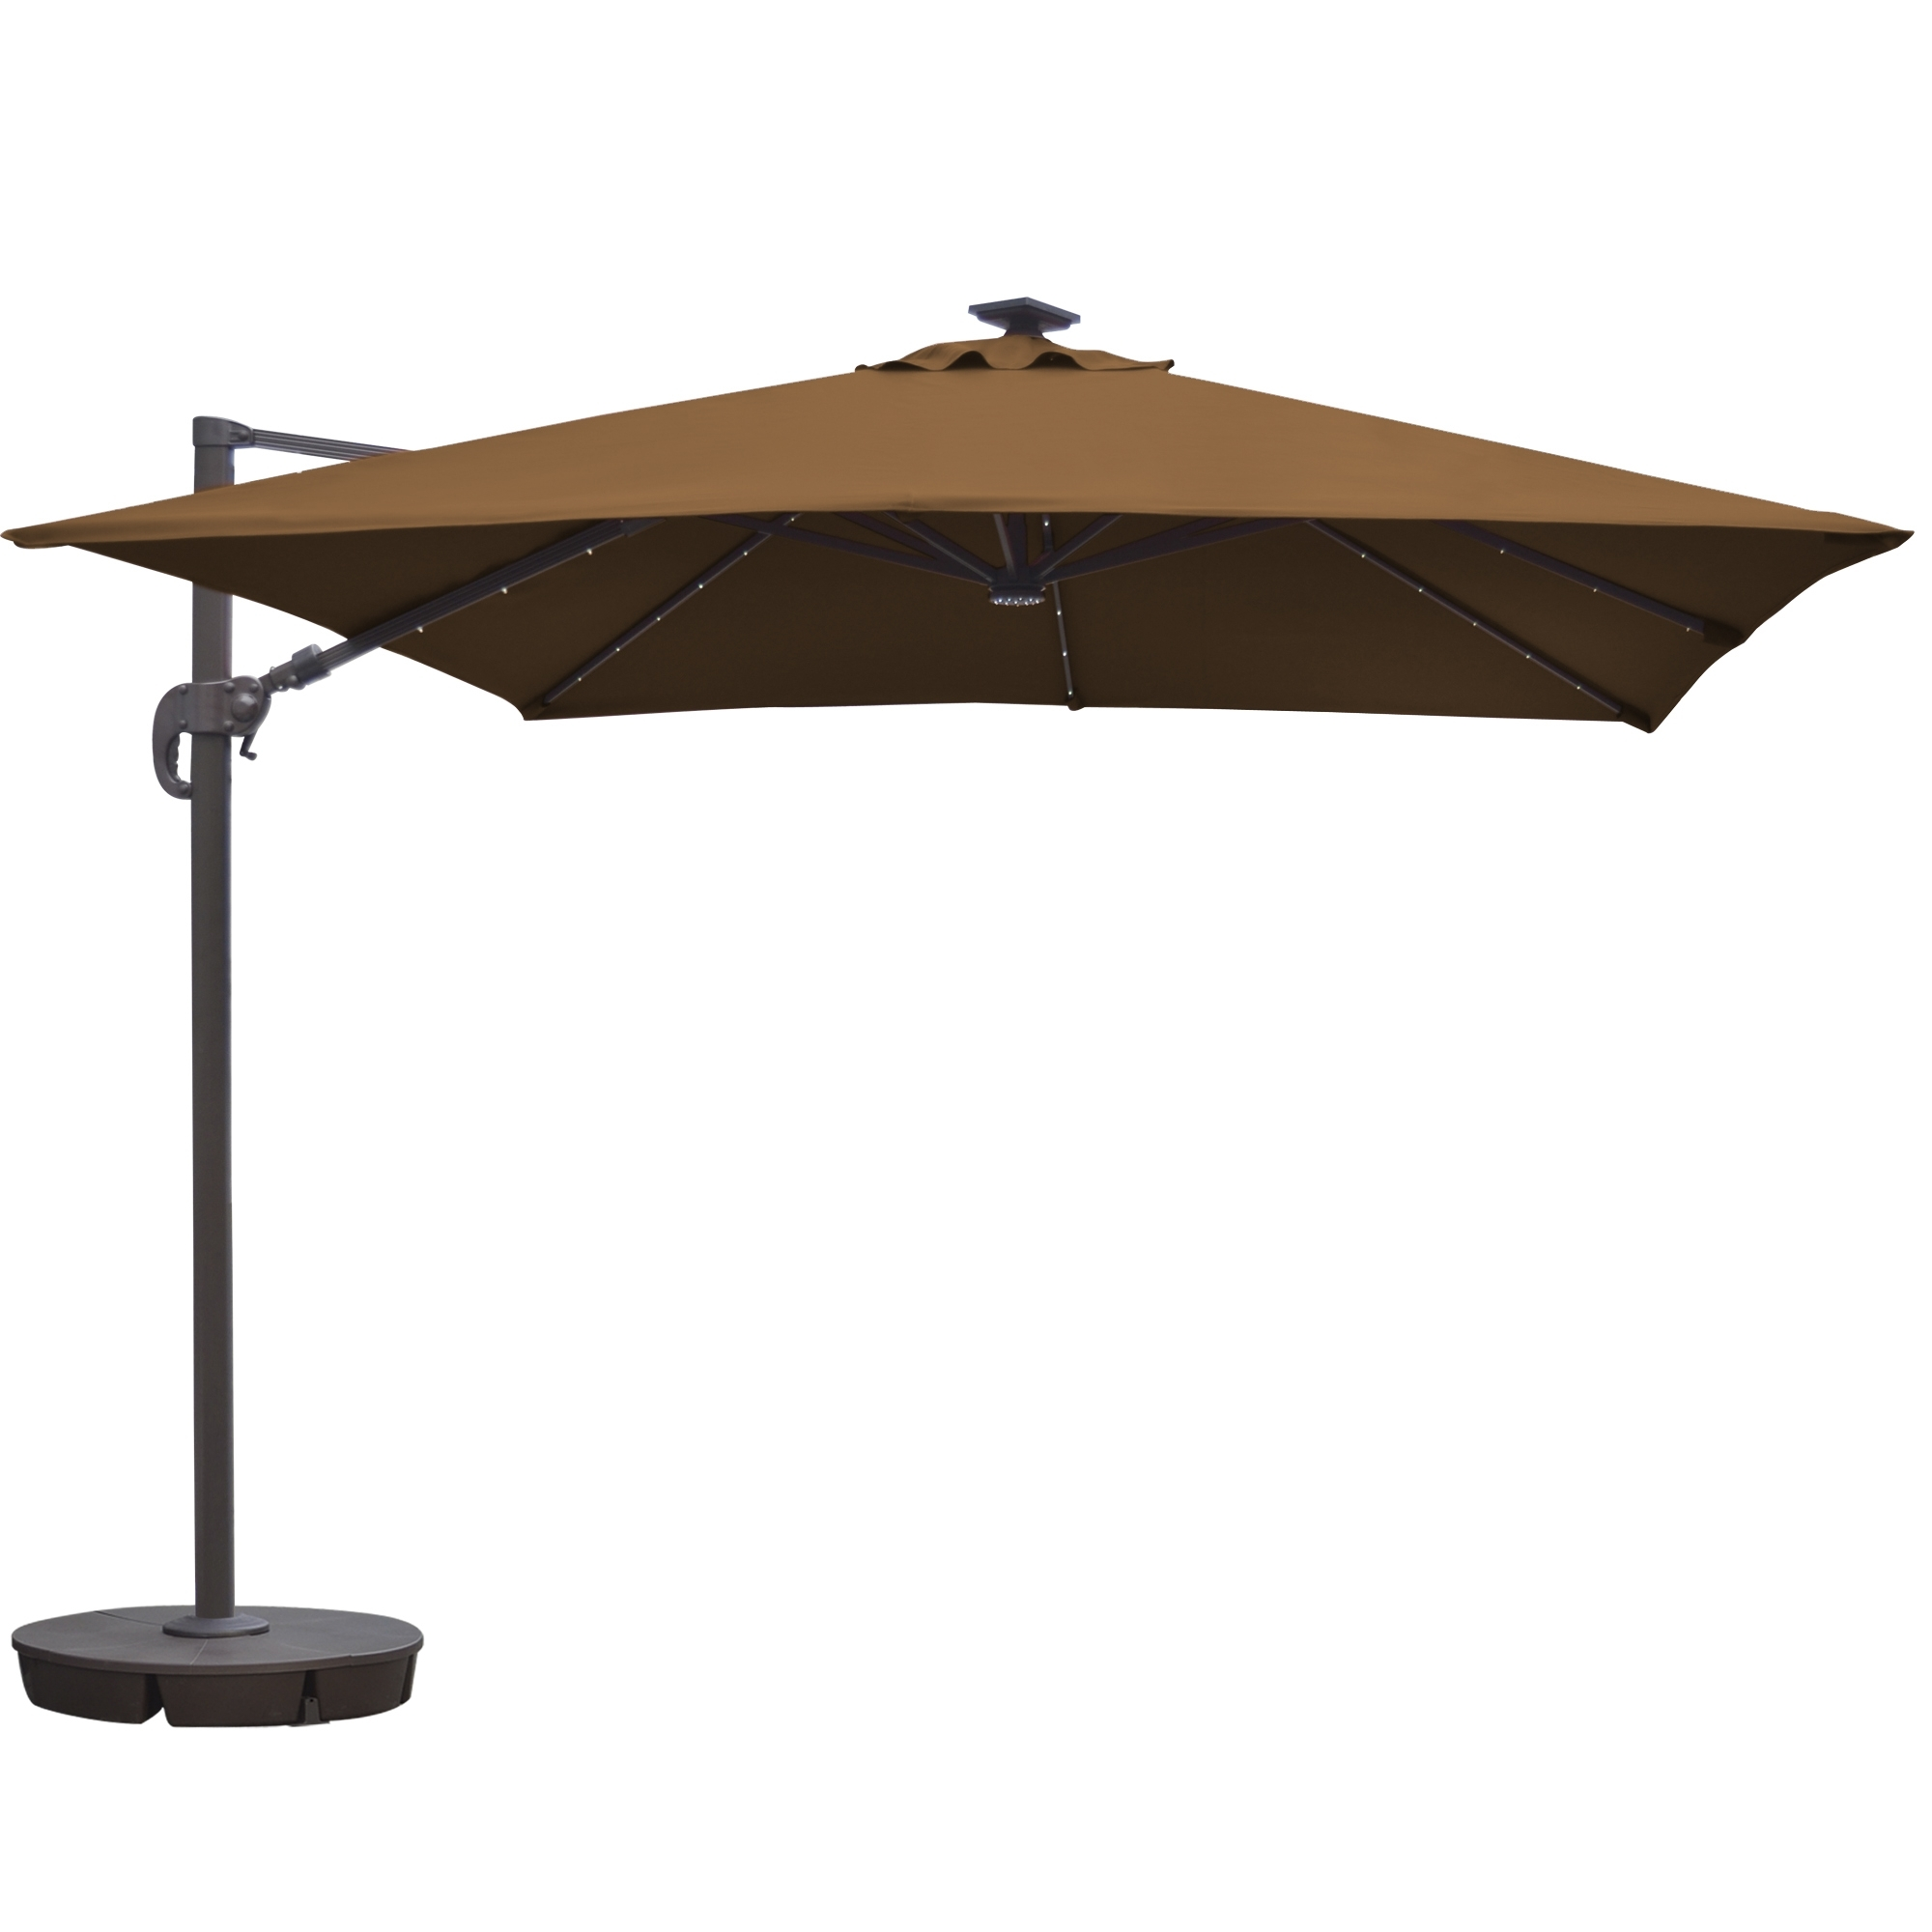 Island Umbrella Santorini Ii Fiesta 10 Ft Square Cantilever Solar Throughout 2018 Square Cantilever Patio Umbrellas (View 4 of 20)